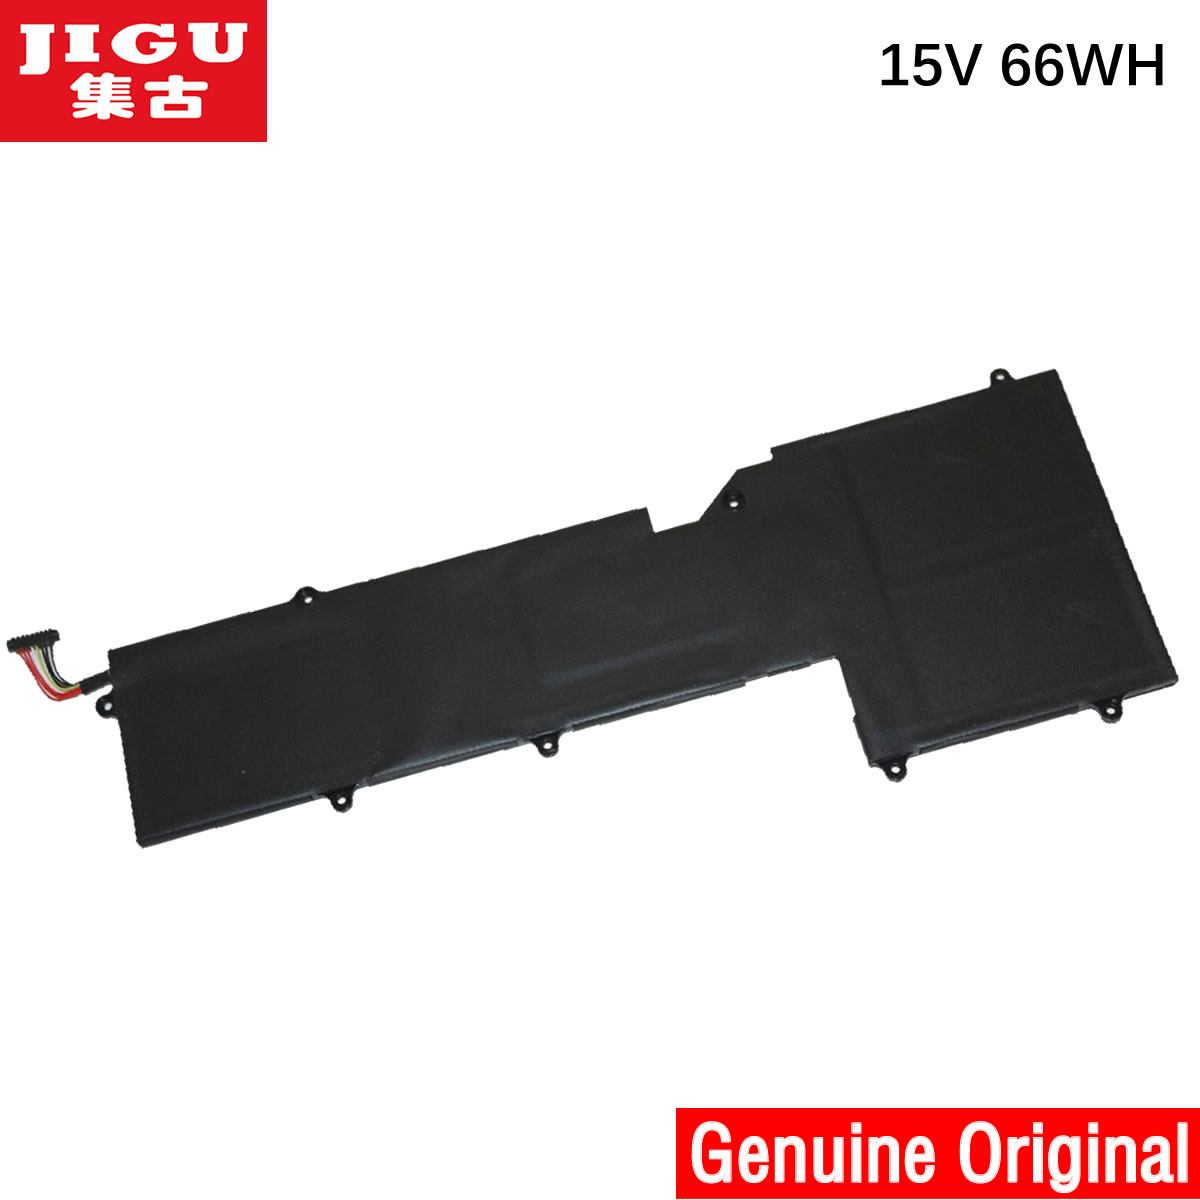 JIGU laptop battery C41N1337 FOR Asus Portable AiO PT2001 jigu original new 66wh 15v c41n1337 battery for asus portable aio pt2001 19 5 inch batteria batteries high quality